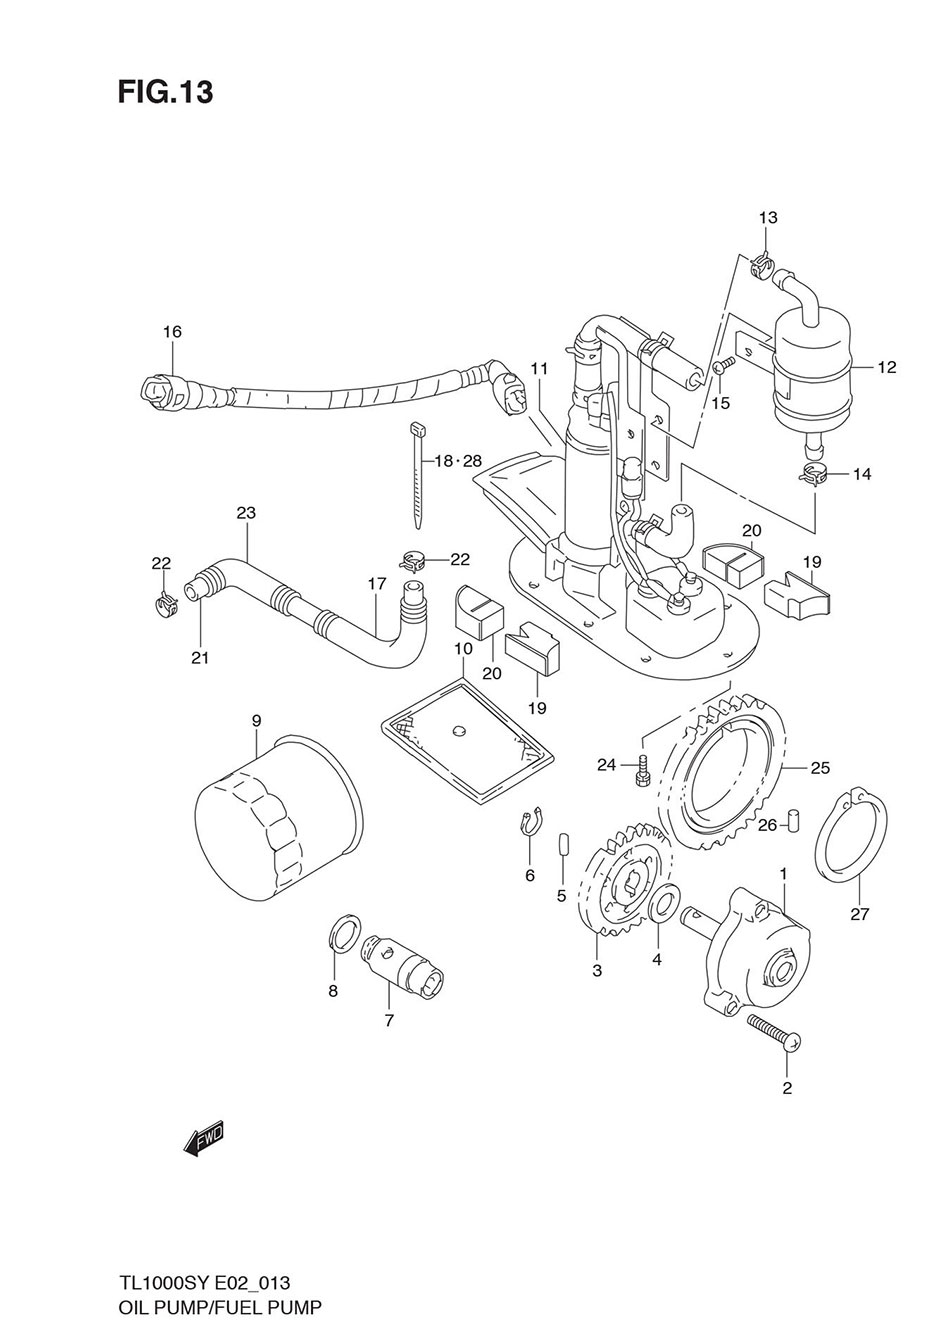 OIL PUMP/FUEL PUMP